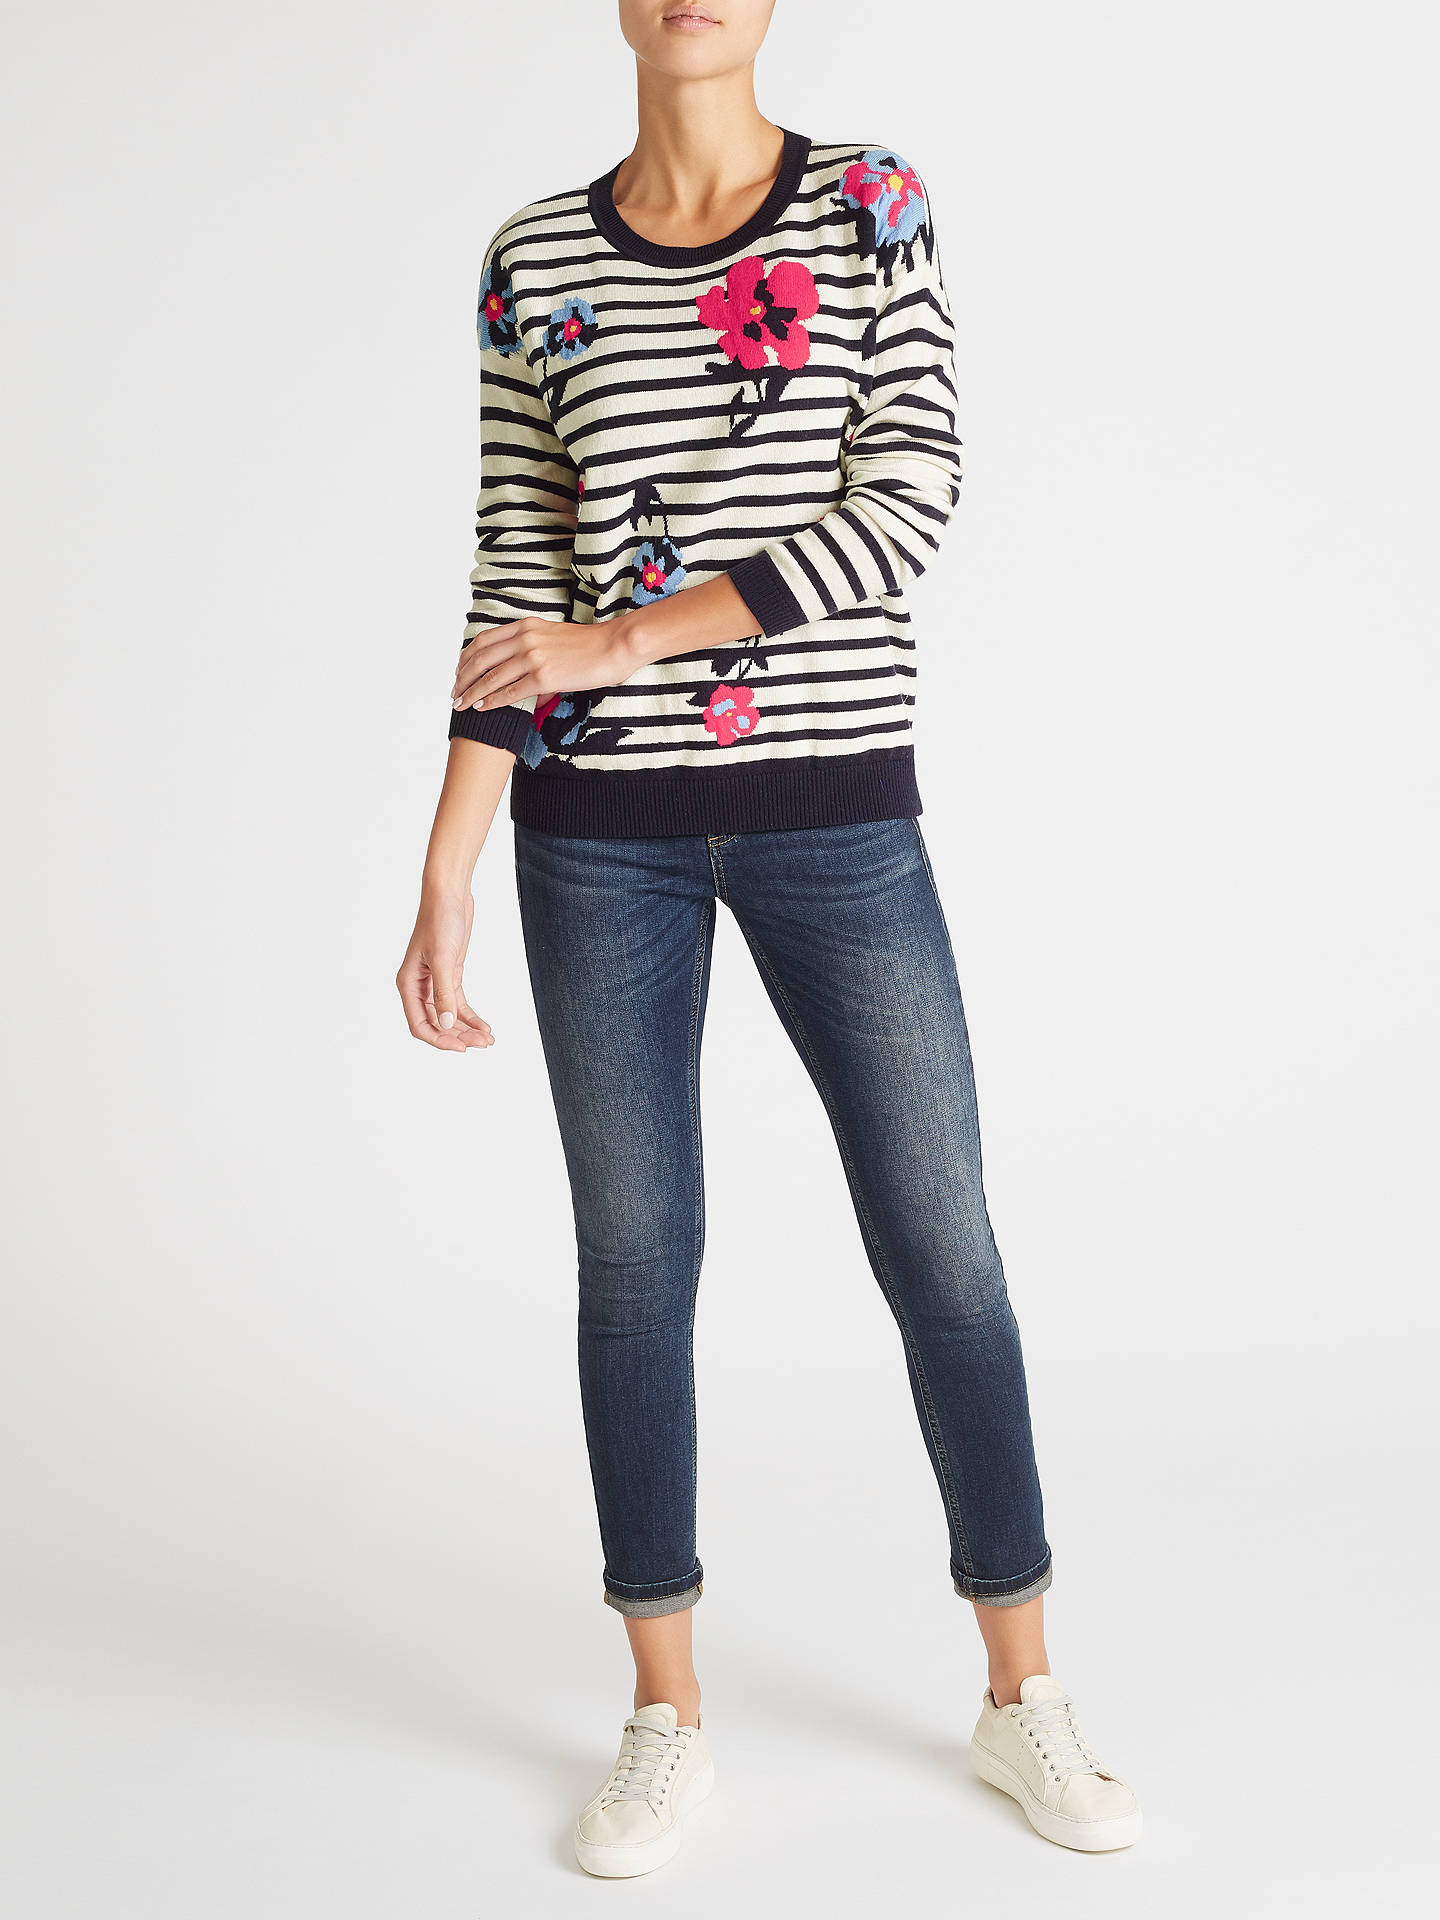 BuyCollection WEEKEND by John Lewis Floral Stripe Intarsia Jumper, Navy/White, 8 Online at johnlewis.com